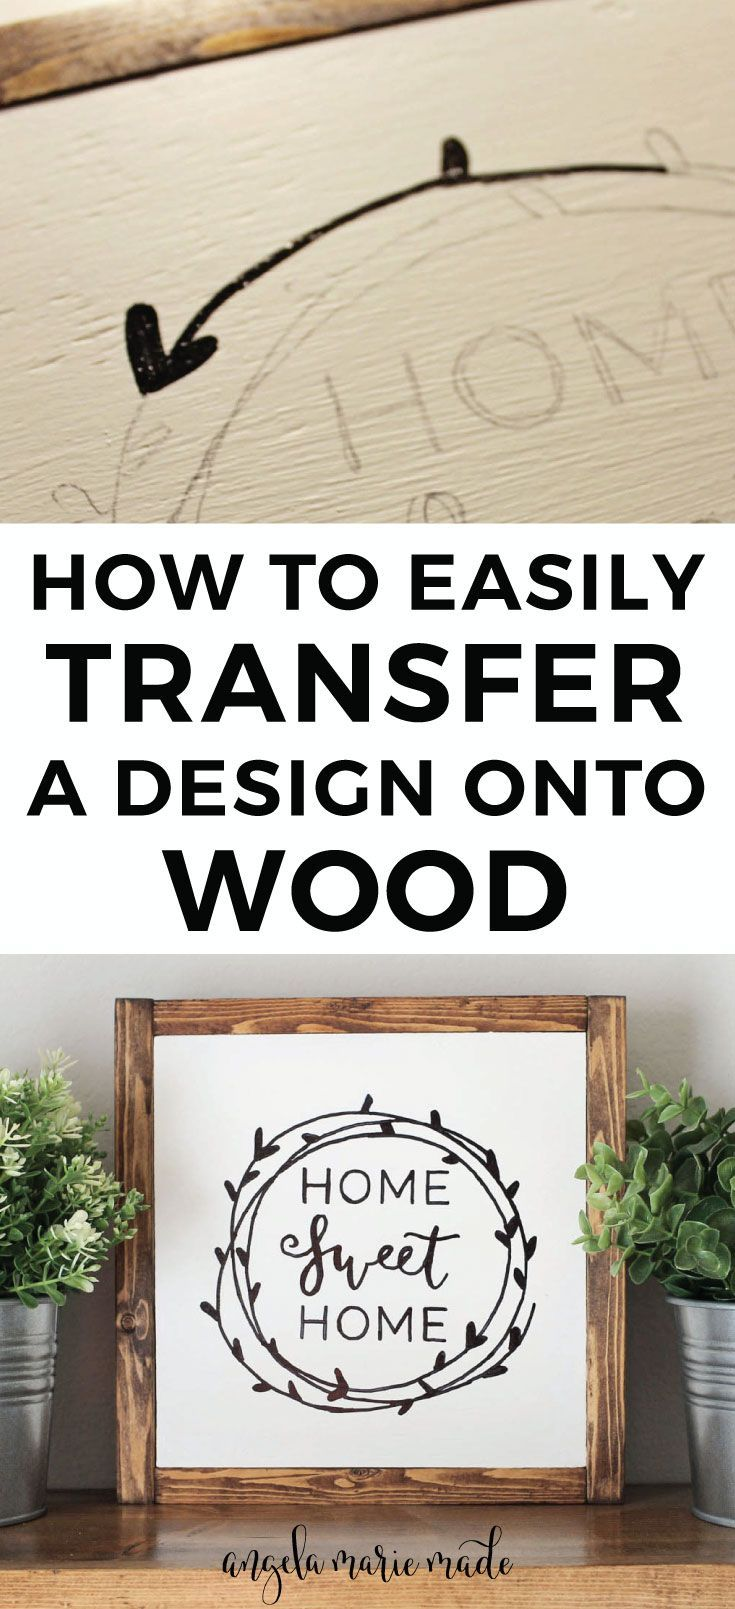 How To Easily Transfer A Design Onto Wood With Just Pencil Easy DIY Sign And Wedding Signs Home Sweet Click Get The Tutorial